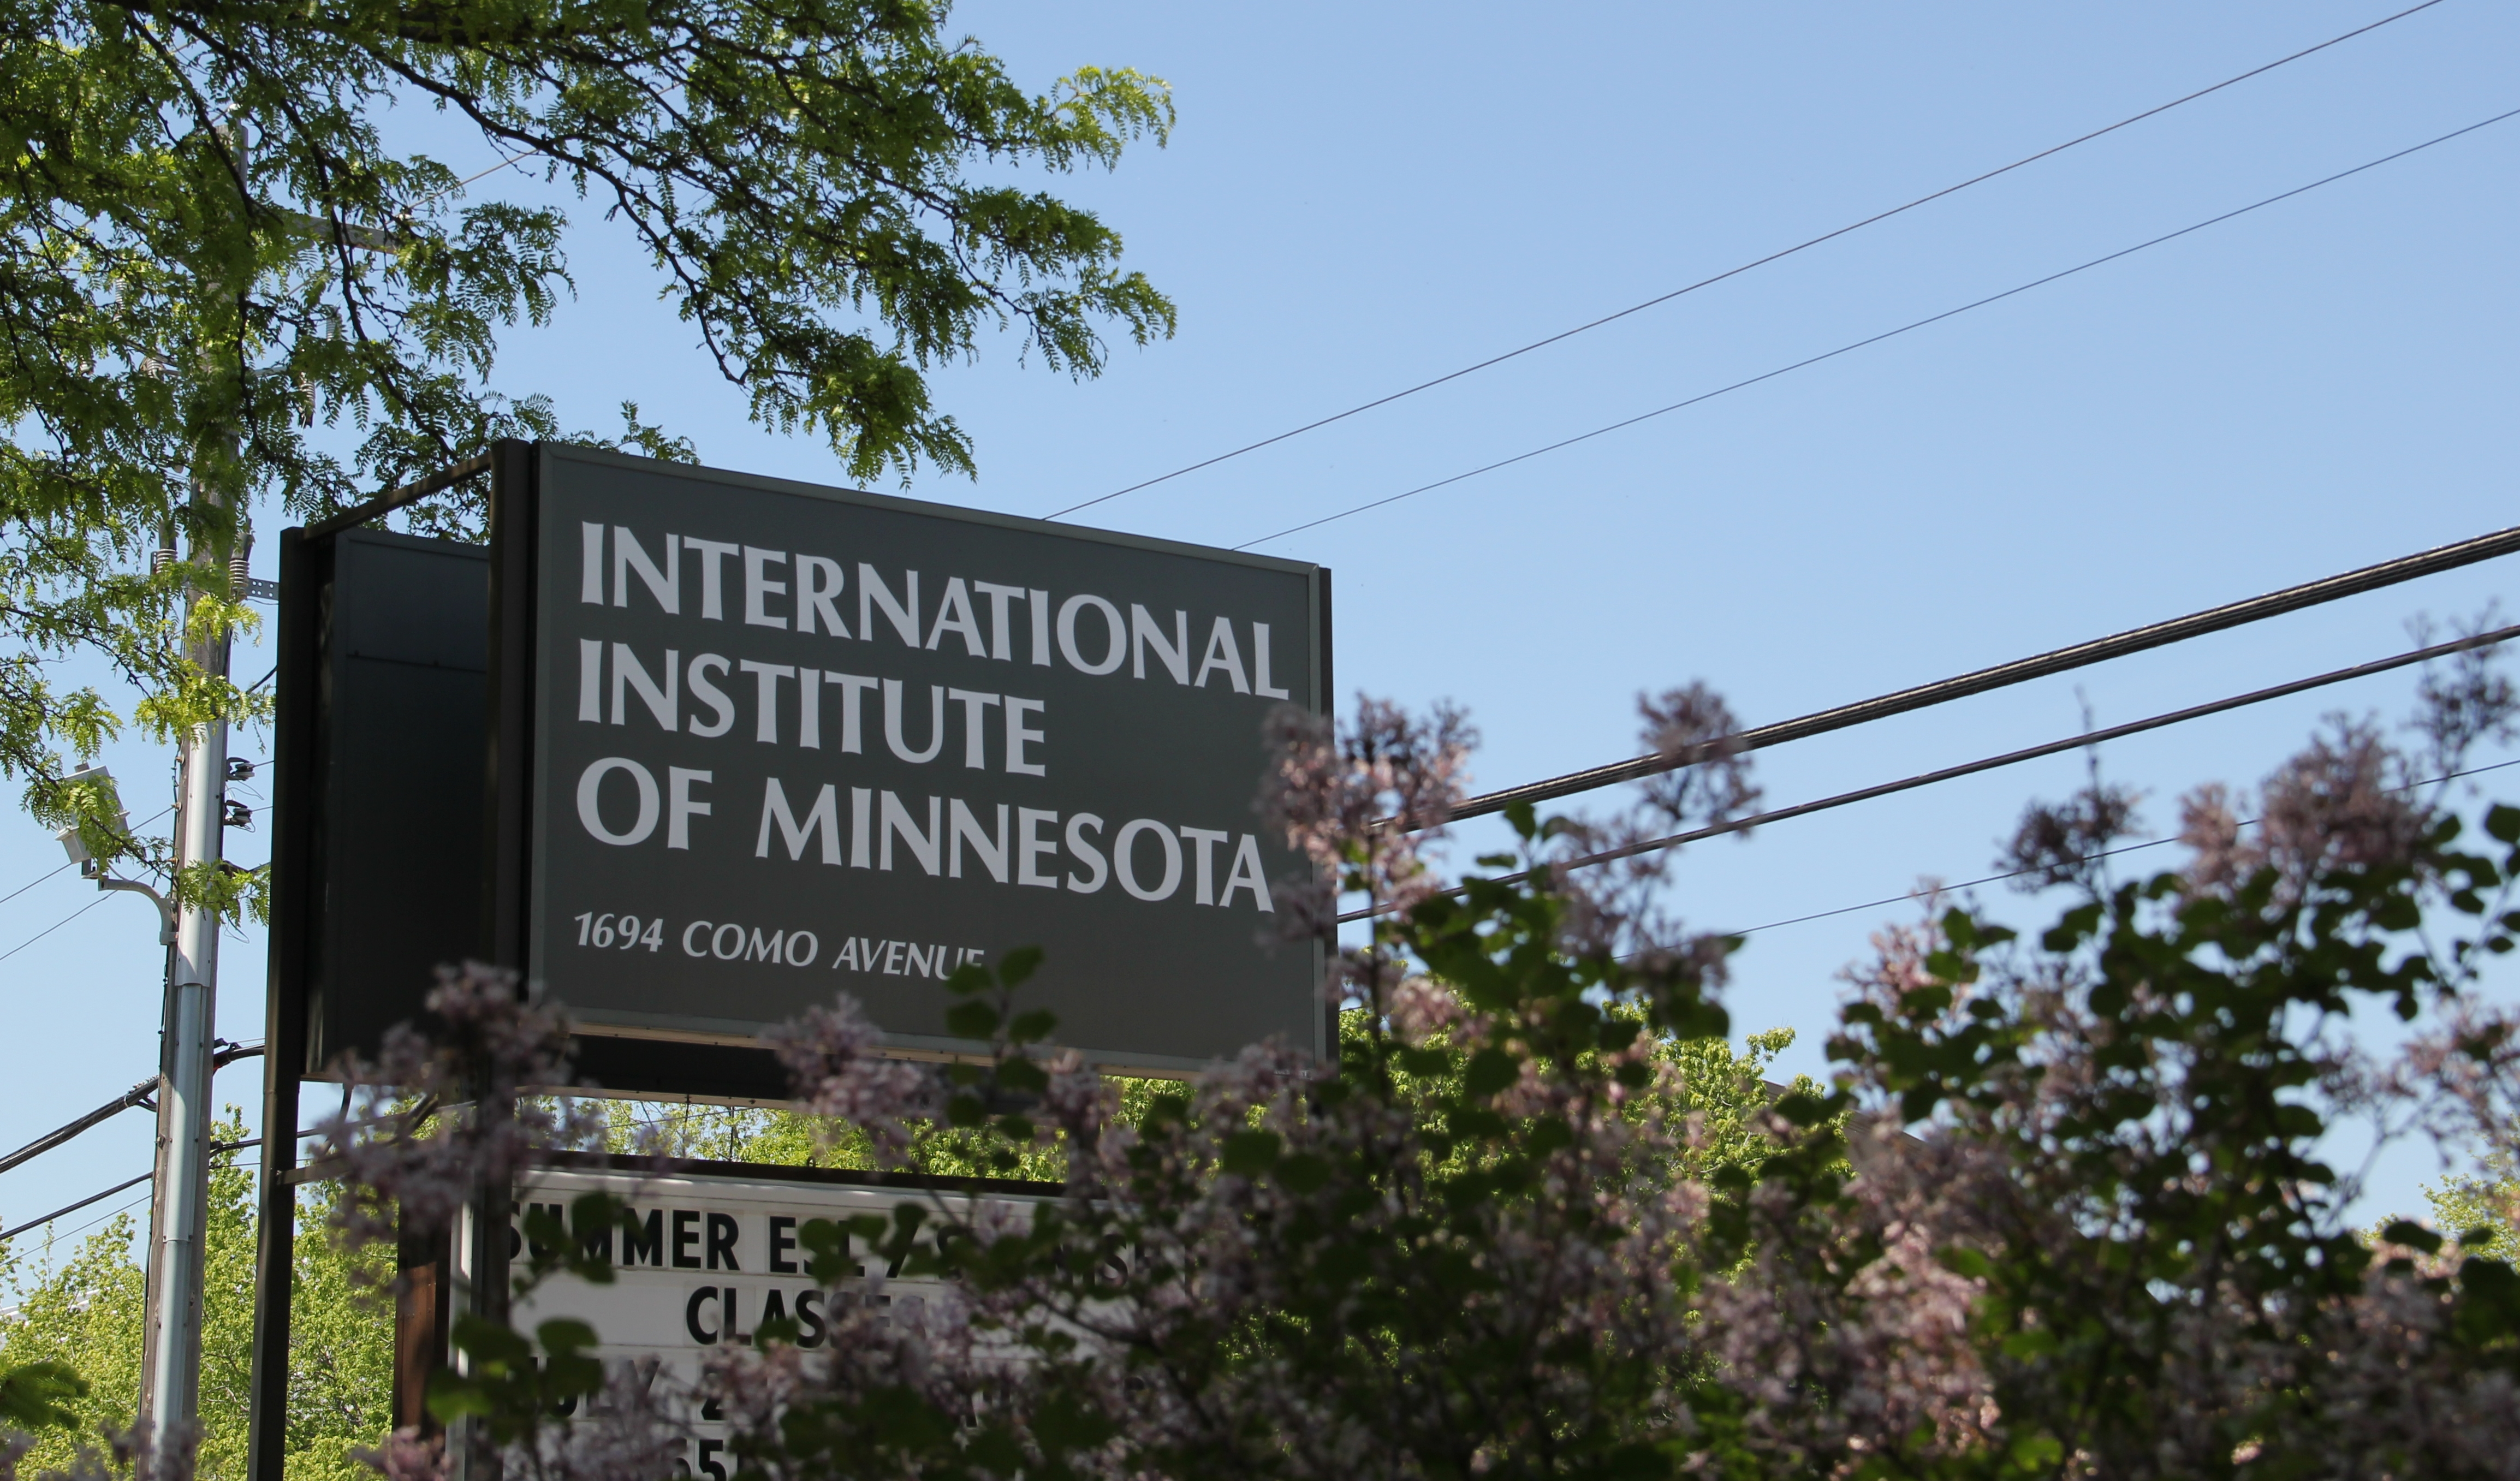 The International Institute of Minnesota.